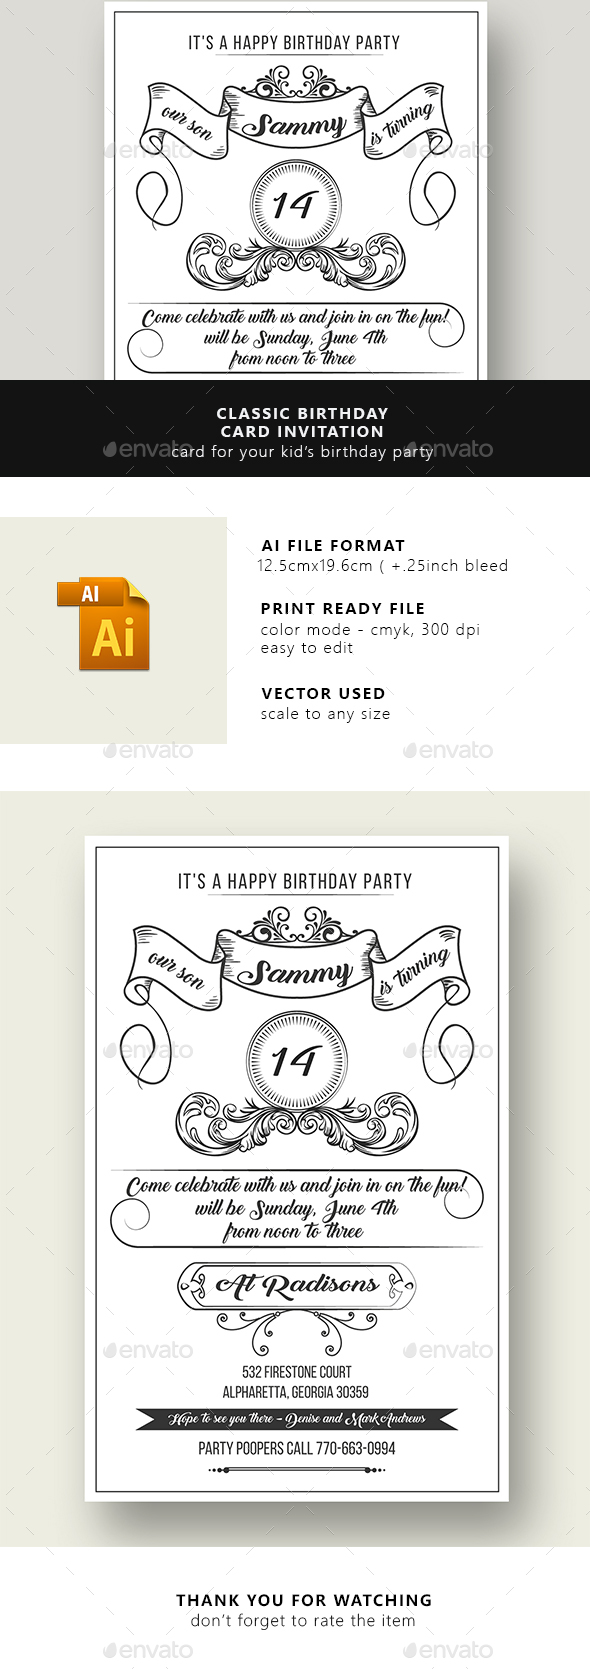 Invitation Cards Graphics Designs Templates From